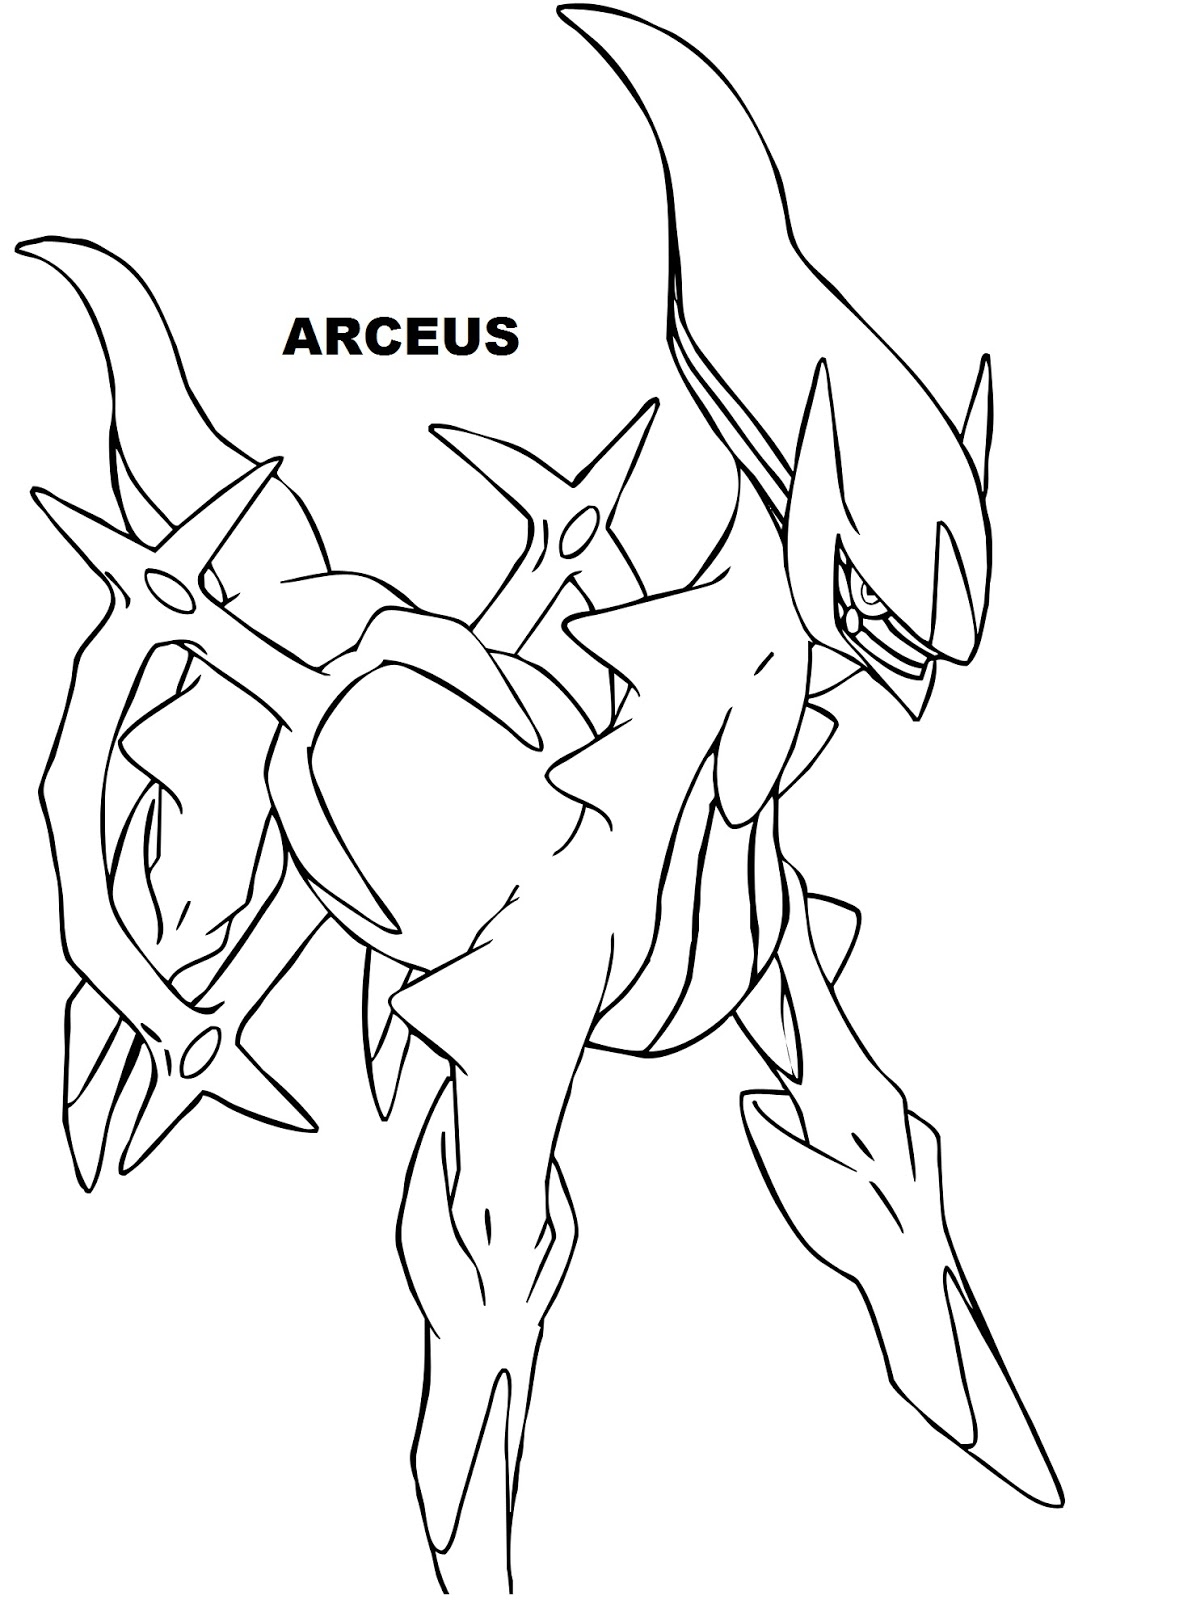 legendary pokemon colouring pages free legendary pokemon coloring pages for kids colouring pokemon legendary pages